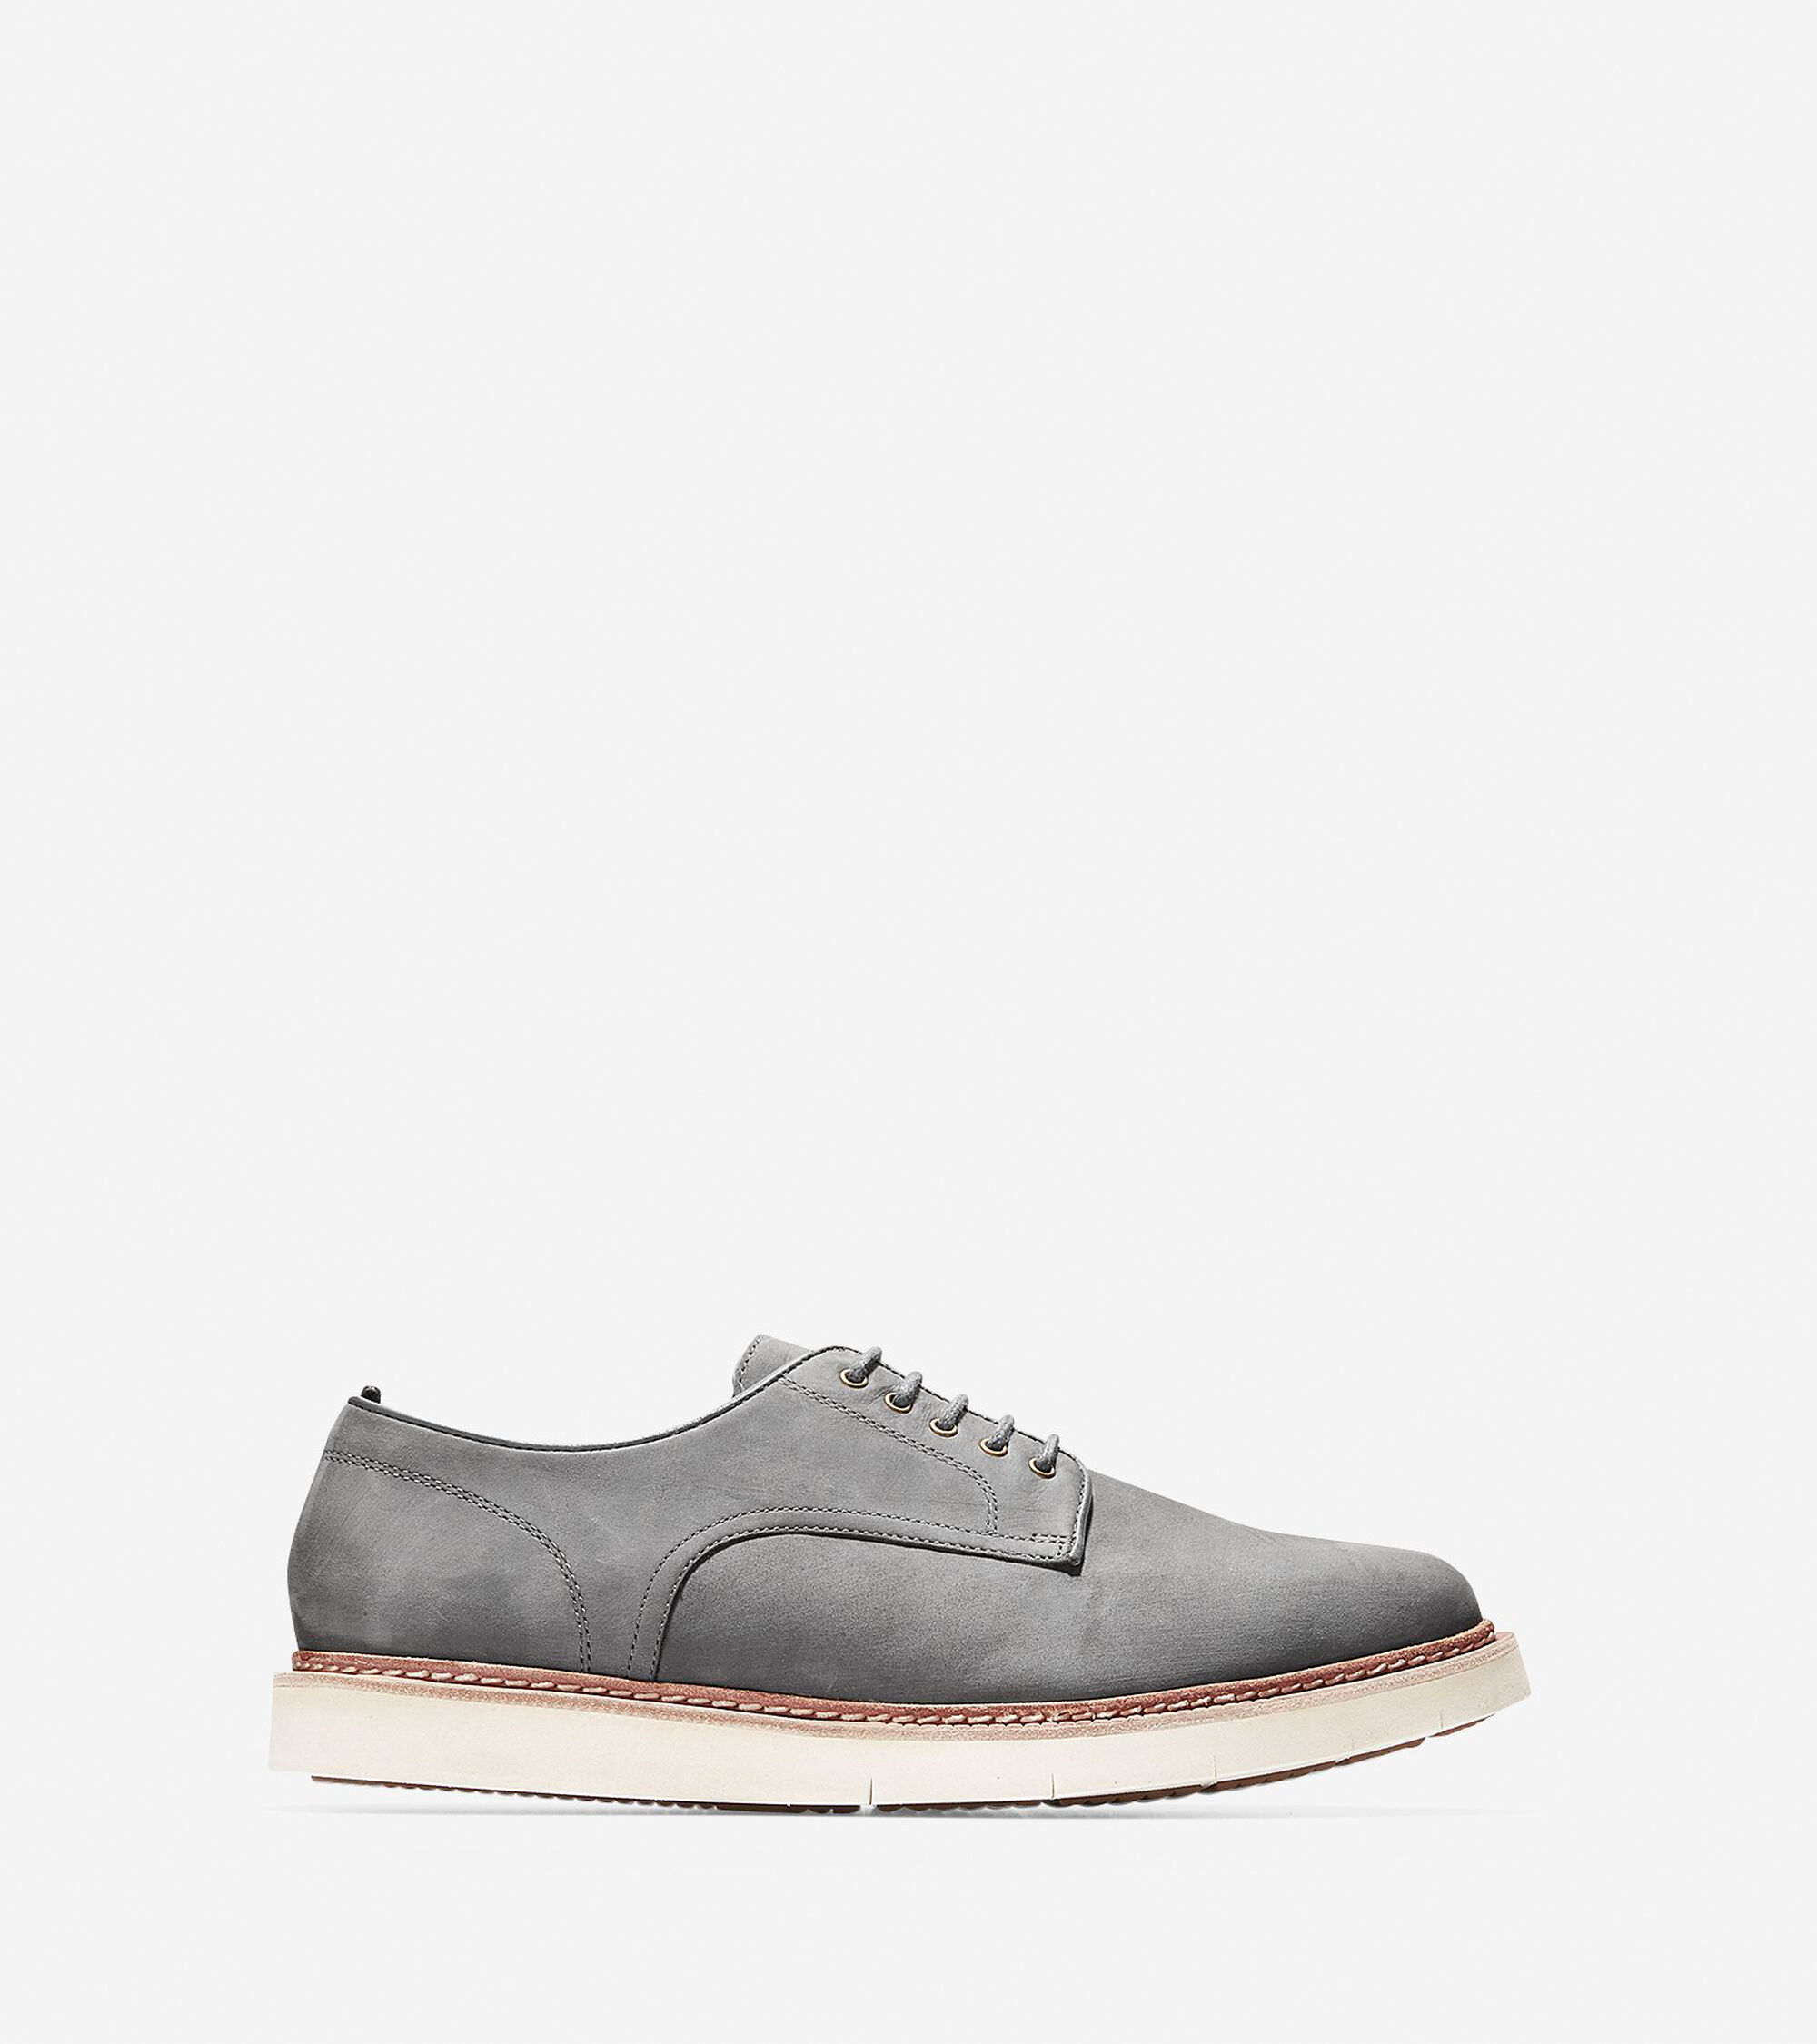 Cole Haan Tanner Plain Toe Oxford Shoes